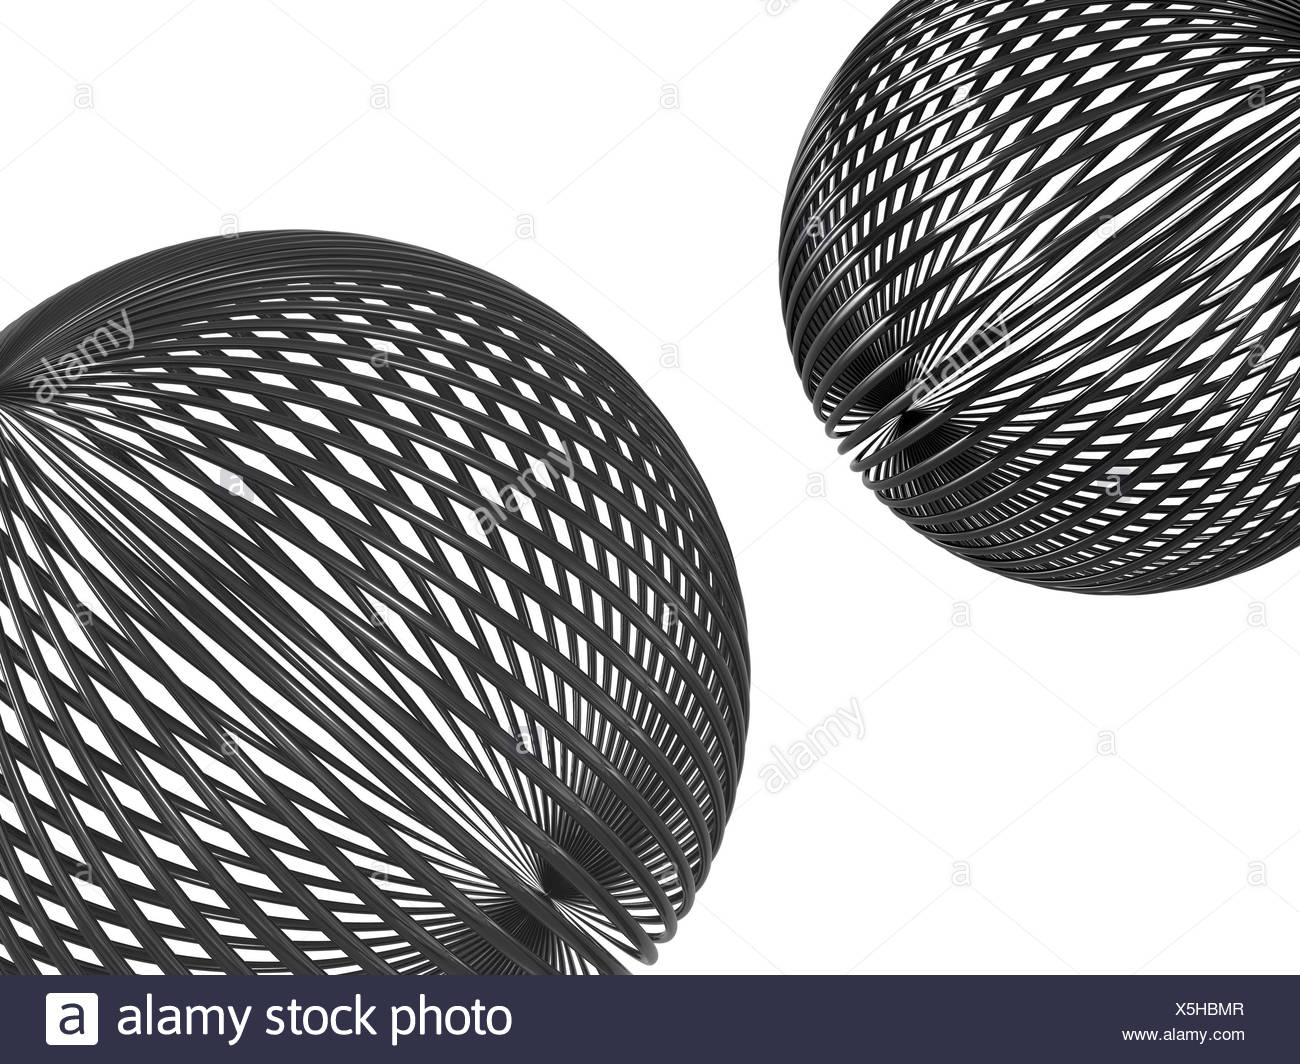 wire tubes metallic sphere isolated reflection mirroring metal ...